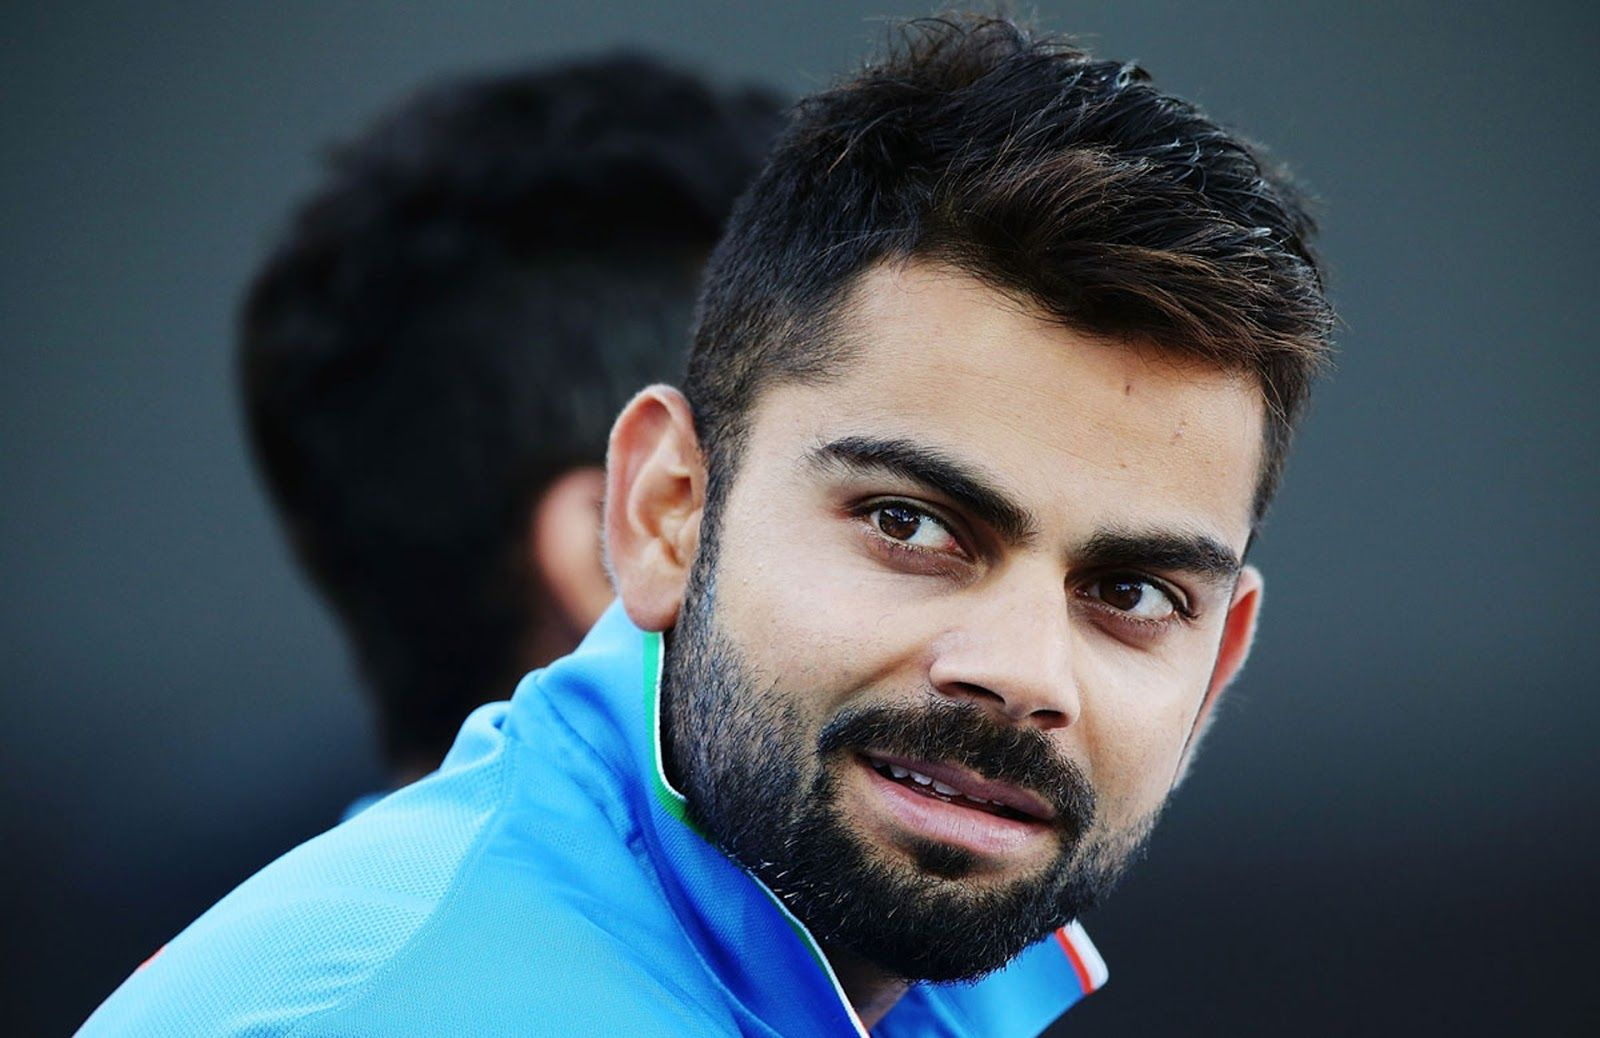 Virat Kohli Wallpapers Hd Download Free 1080p Virat Kohli